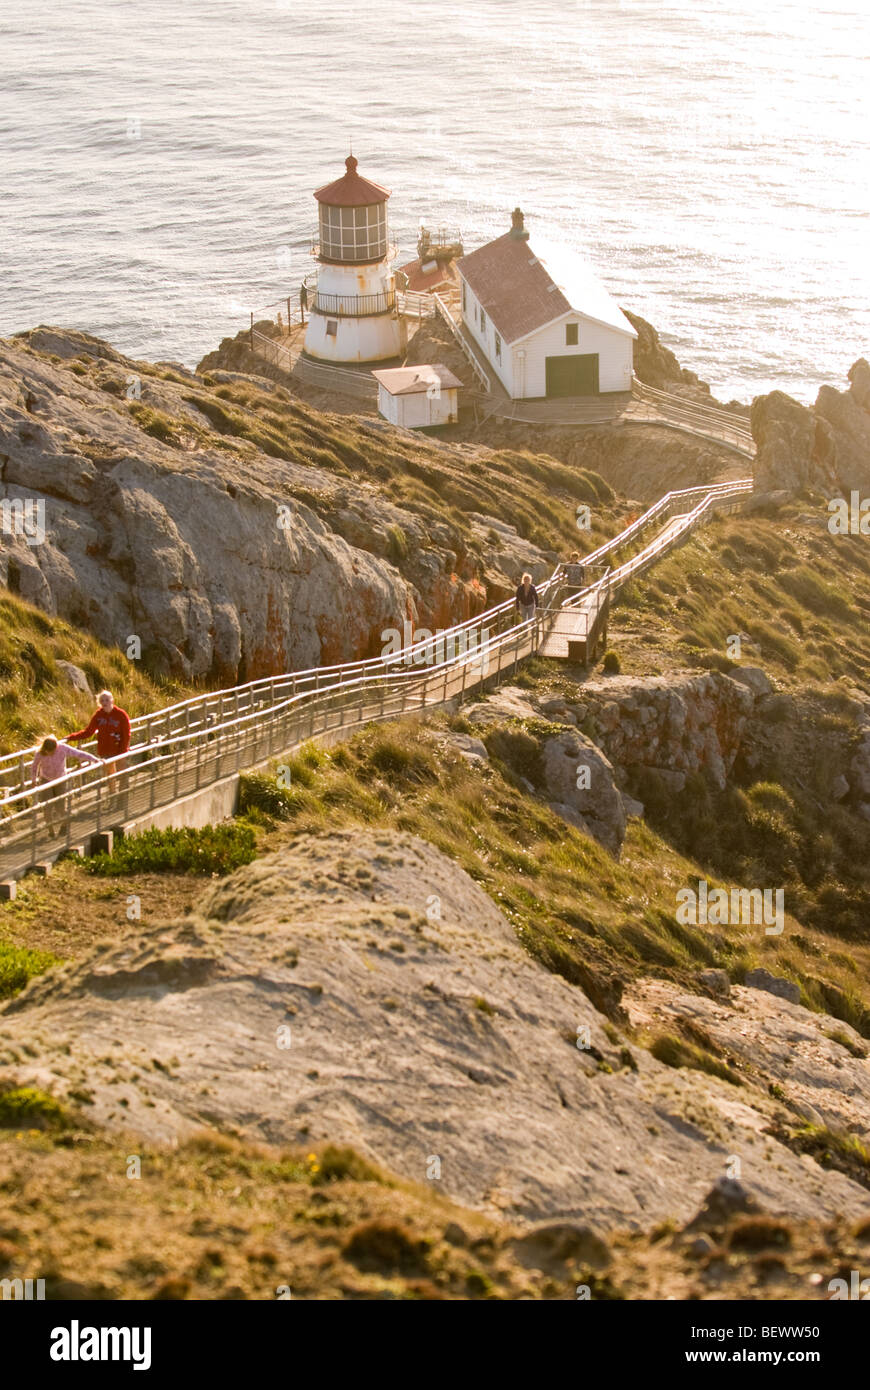 The Point Reyes Lighthouse at the Point Reyes National Seashore near San Francisco, California. - Stock Image